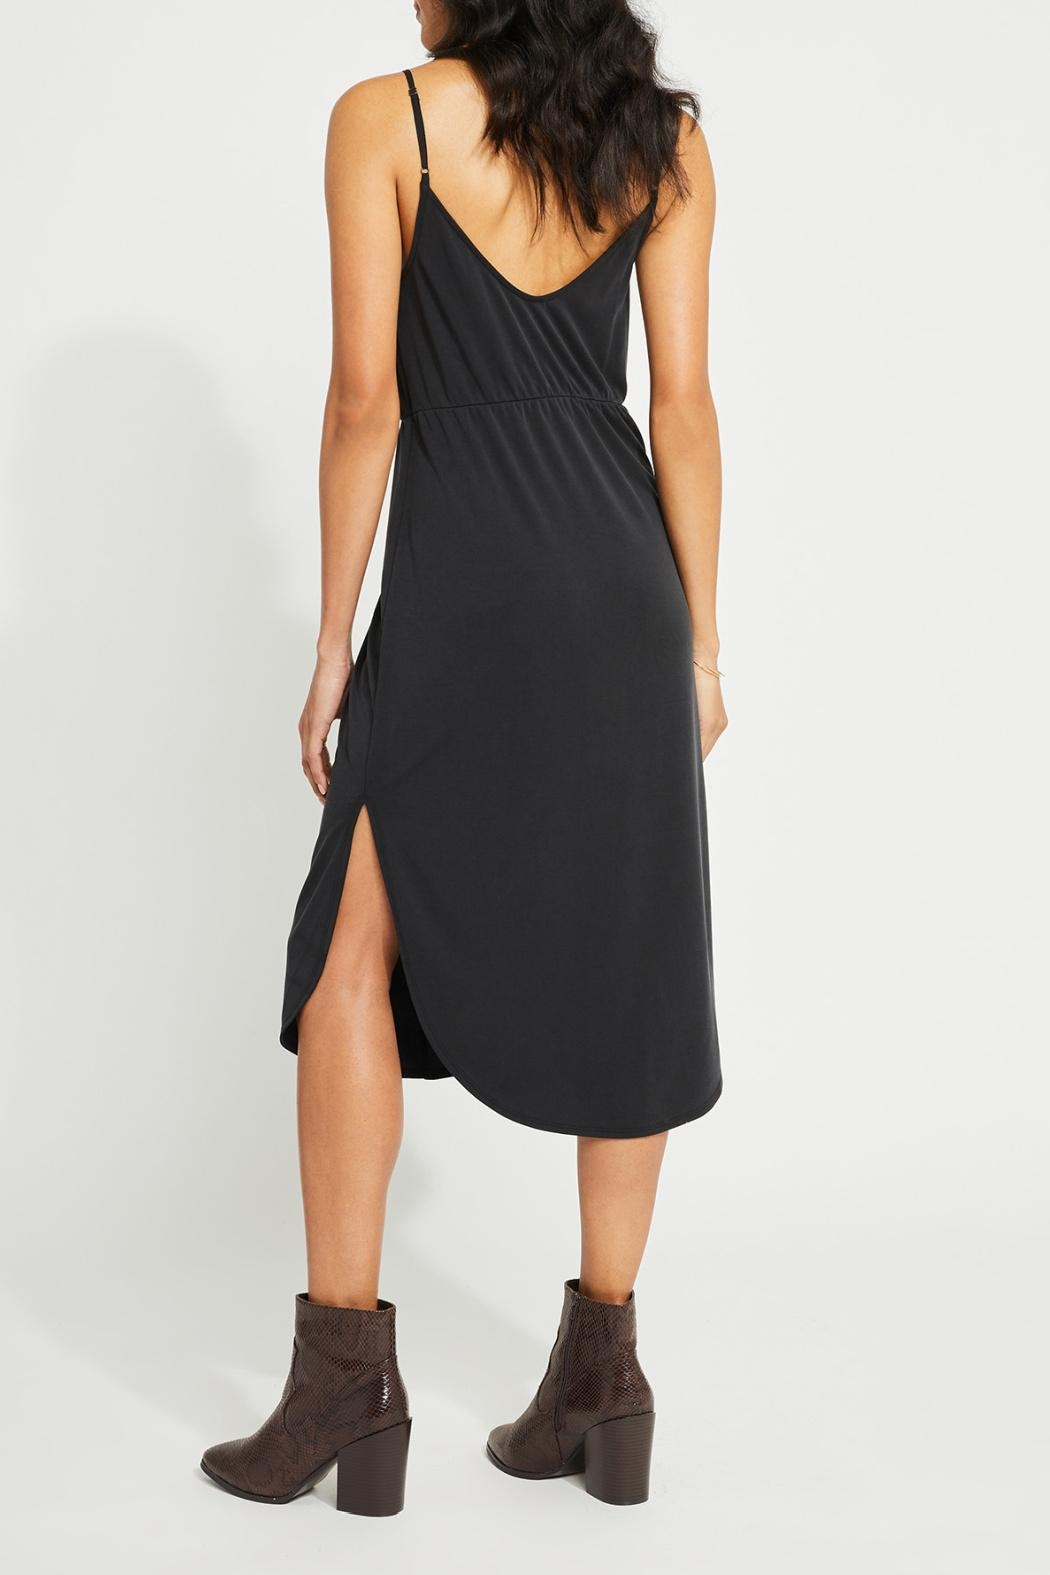 Gentle Fawn Front Gather Dress - Side Cropped Image